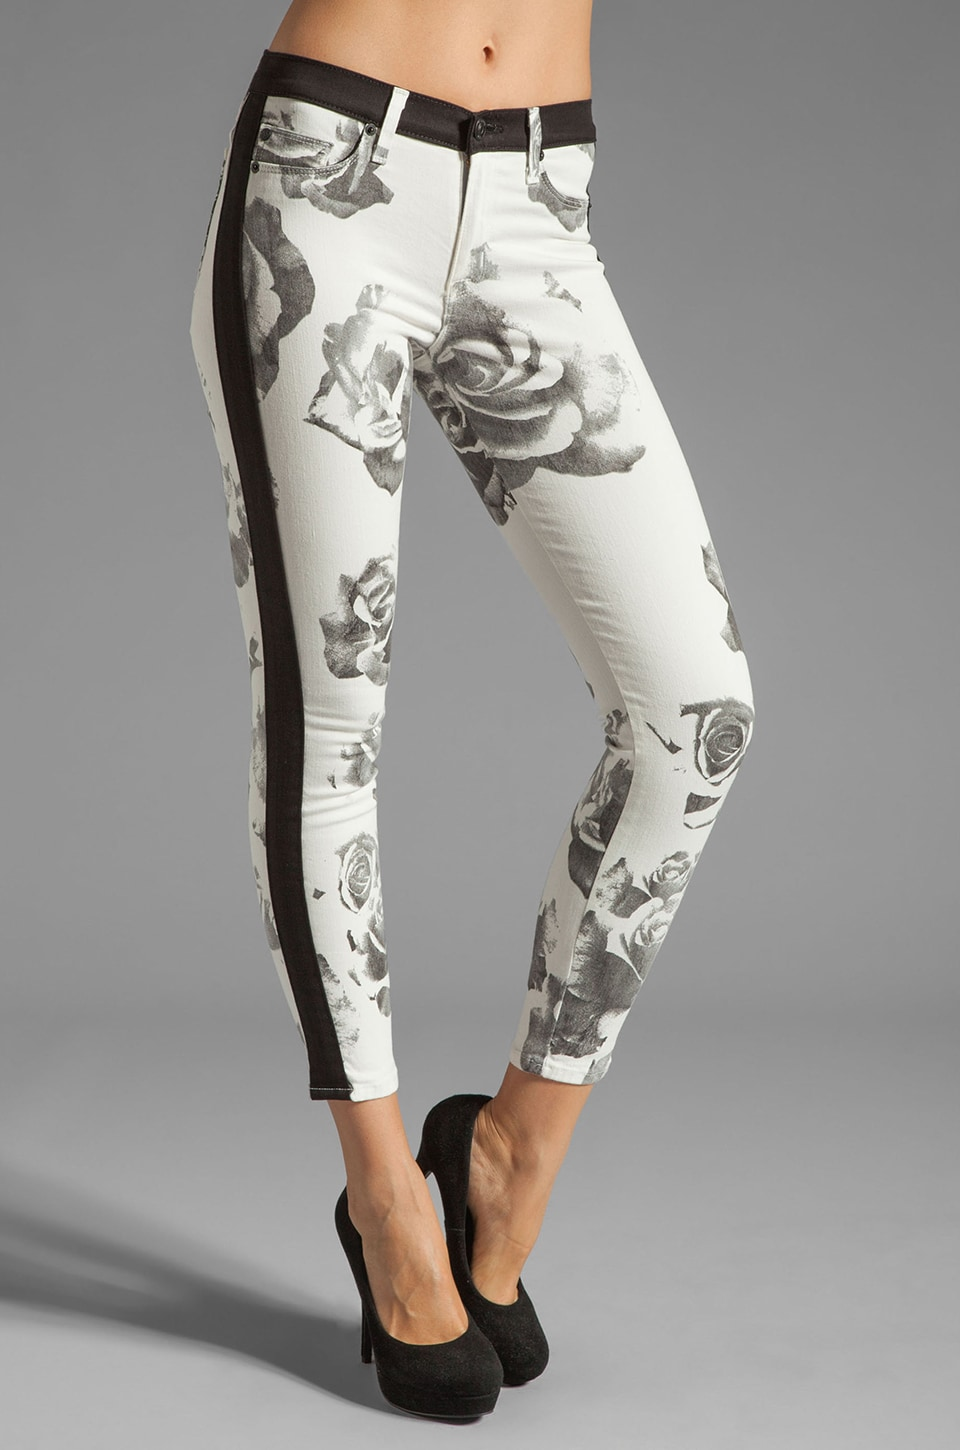 Hudson Jeans in Black/White Floral